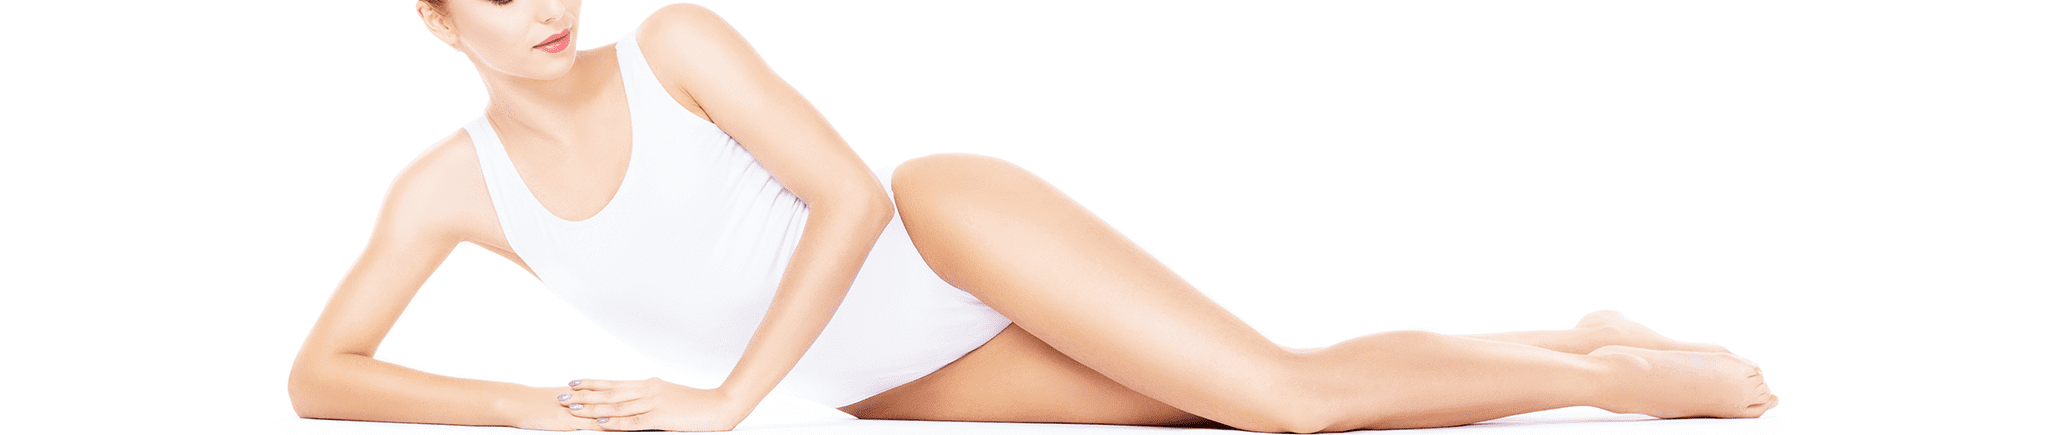 Liposuction In Tri Cities Tn Fat Removal Jim Brantner Plastic Surgery